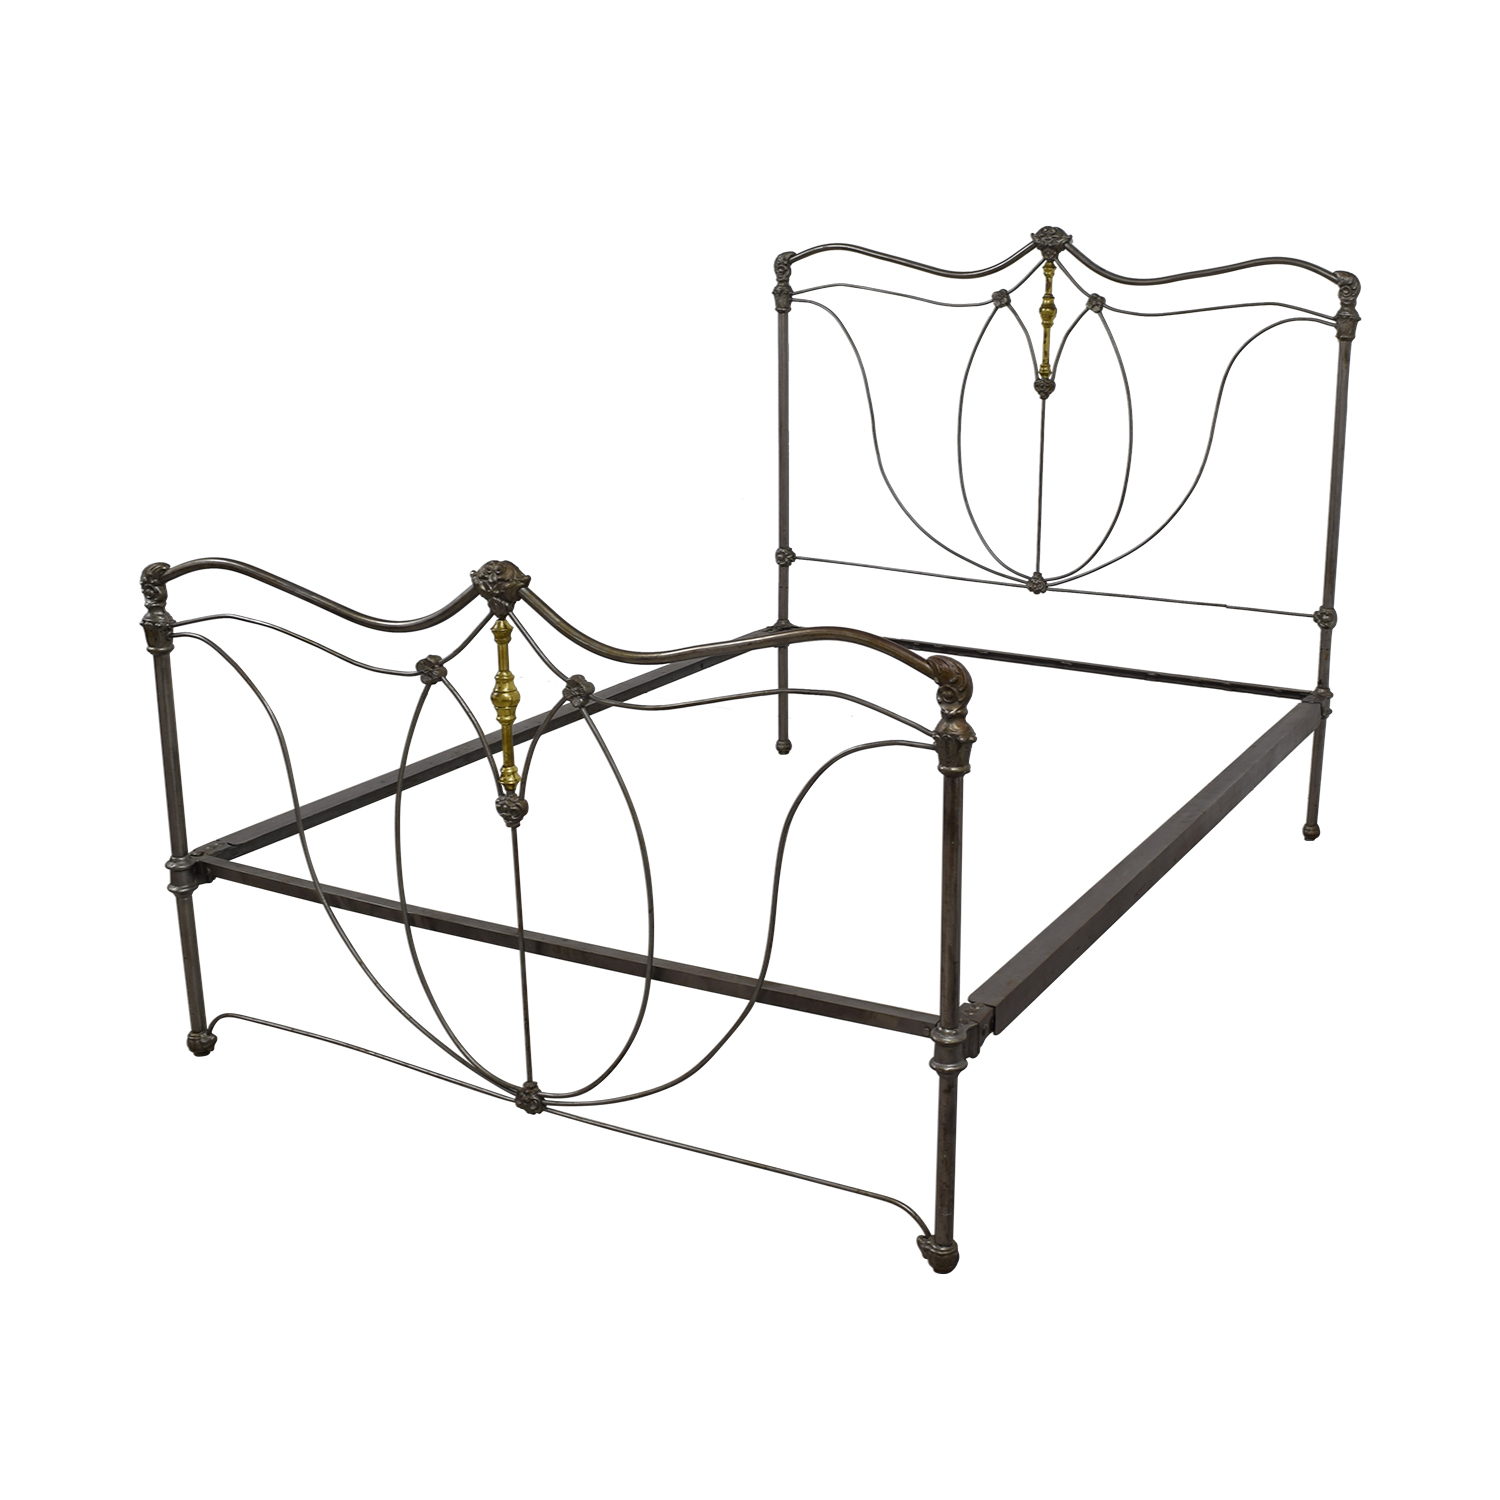 90 off french antique iron and brass queen bed frame beds. Black Bedroom Furniture Sets. Home Design Ideas